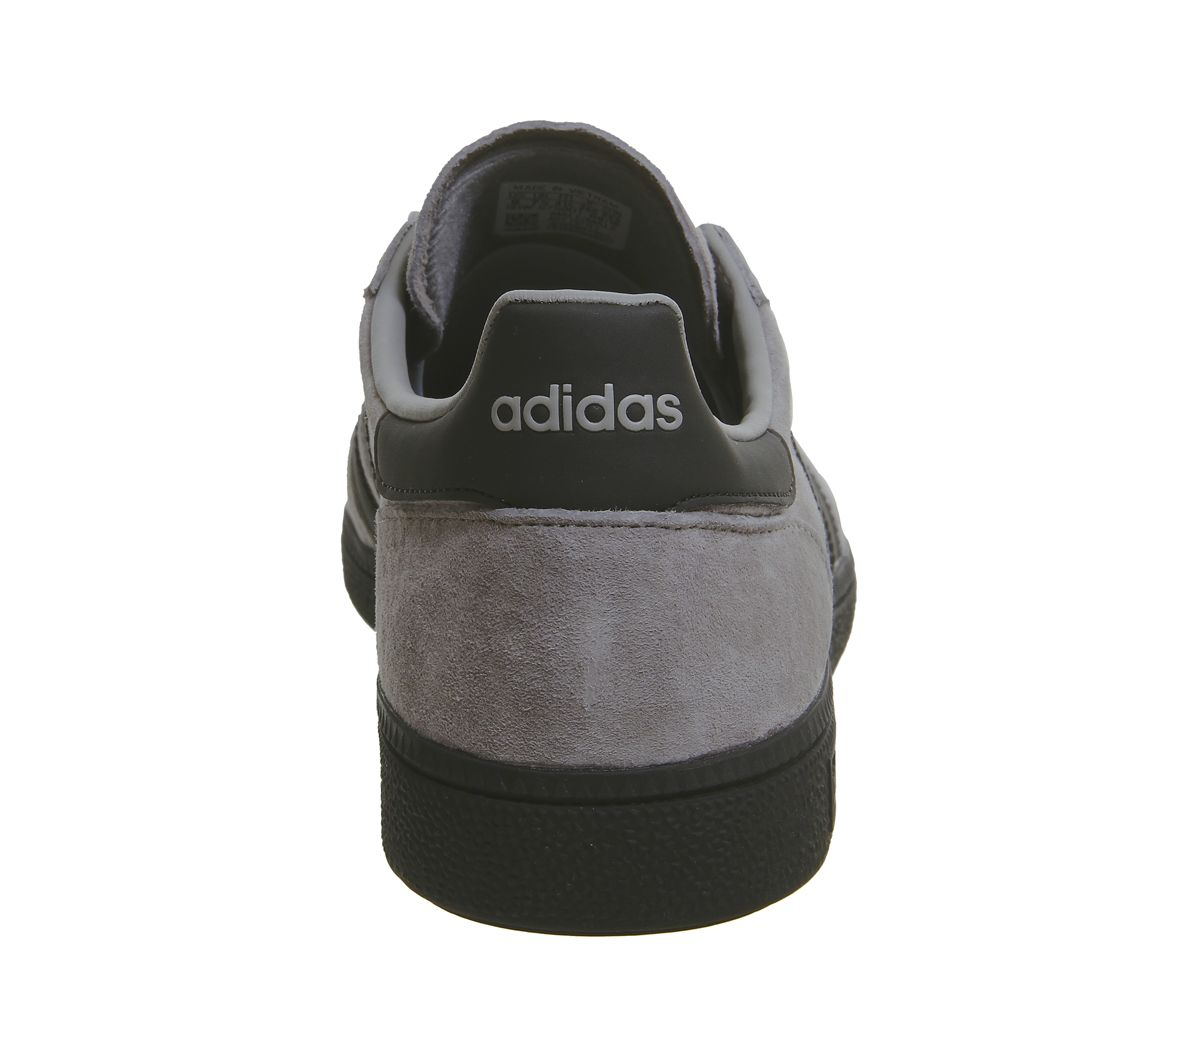 Adidas-Handball-Spezial-Trainers-Solid-Grey-Core-Black-Silver-Exclusive-Trainers thumbnail 14